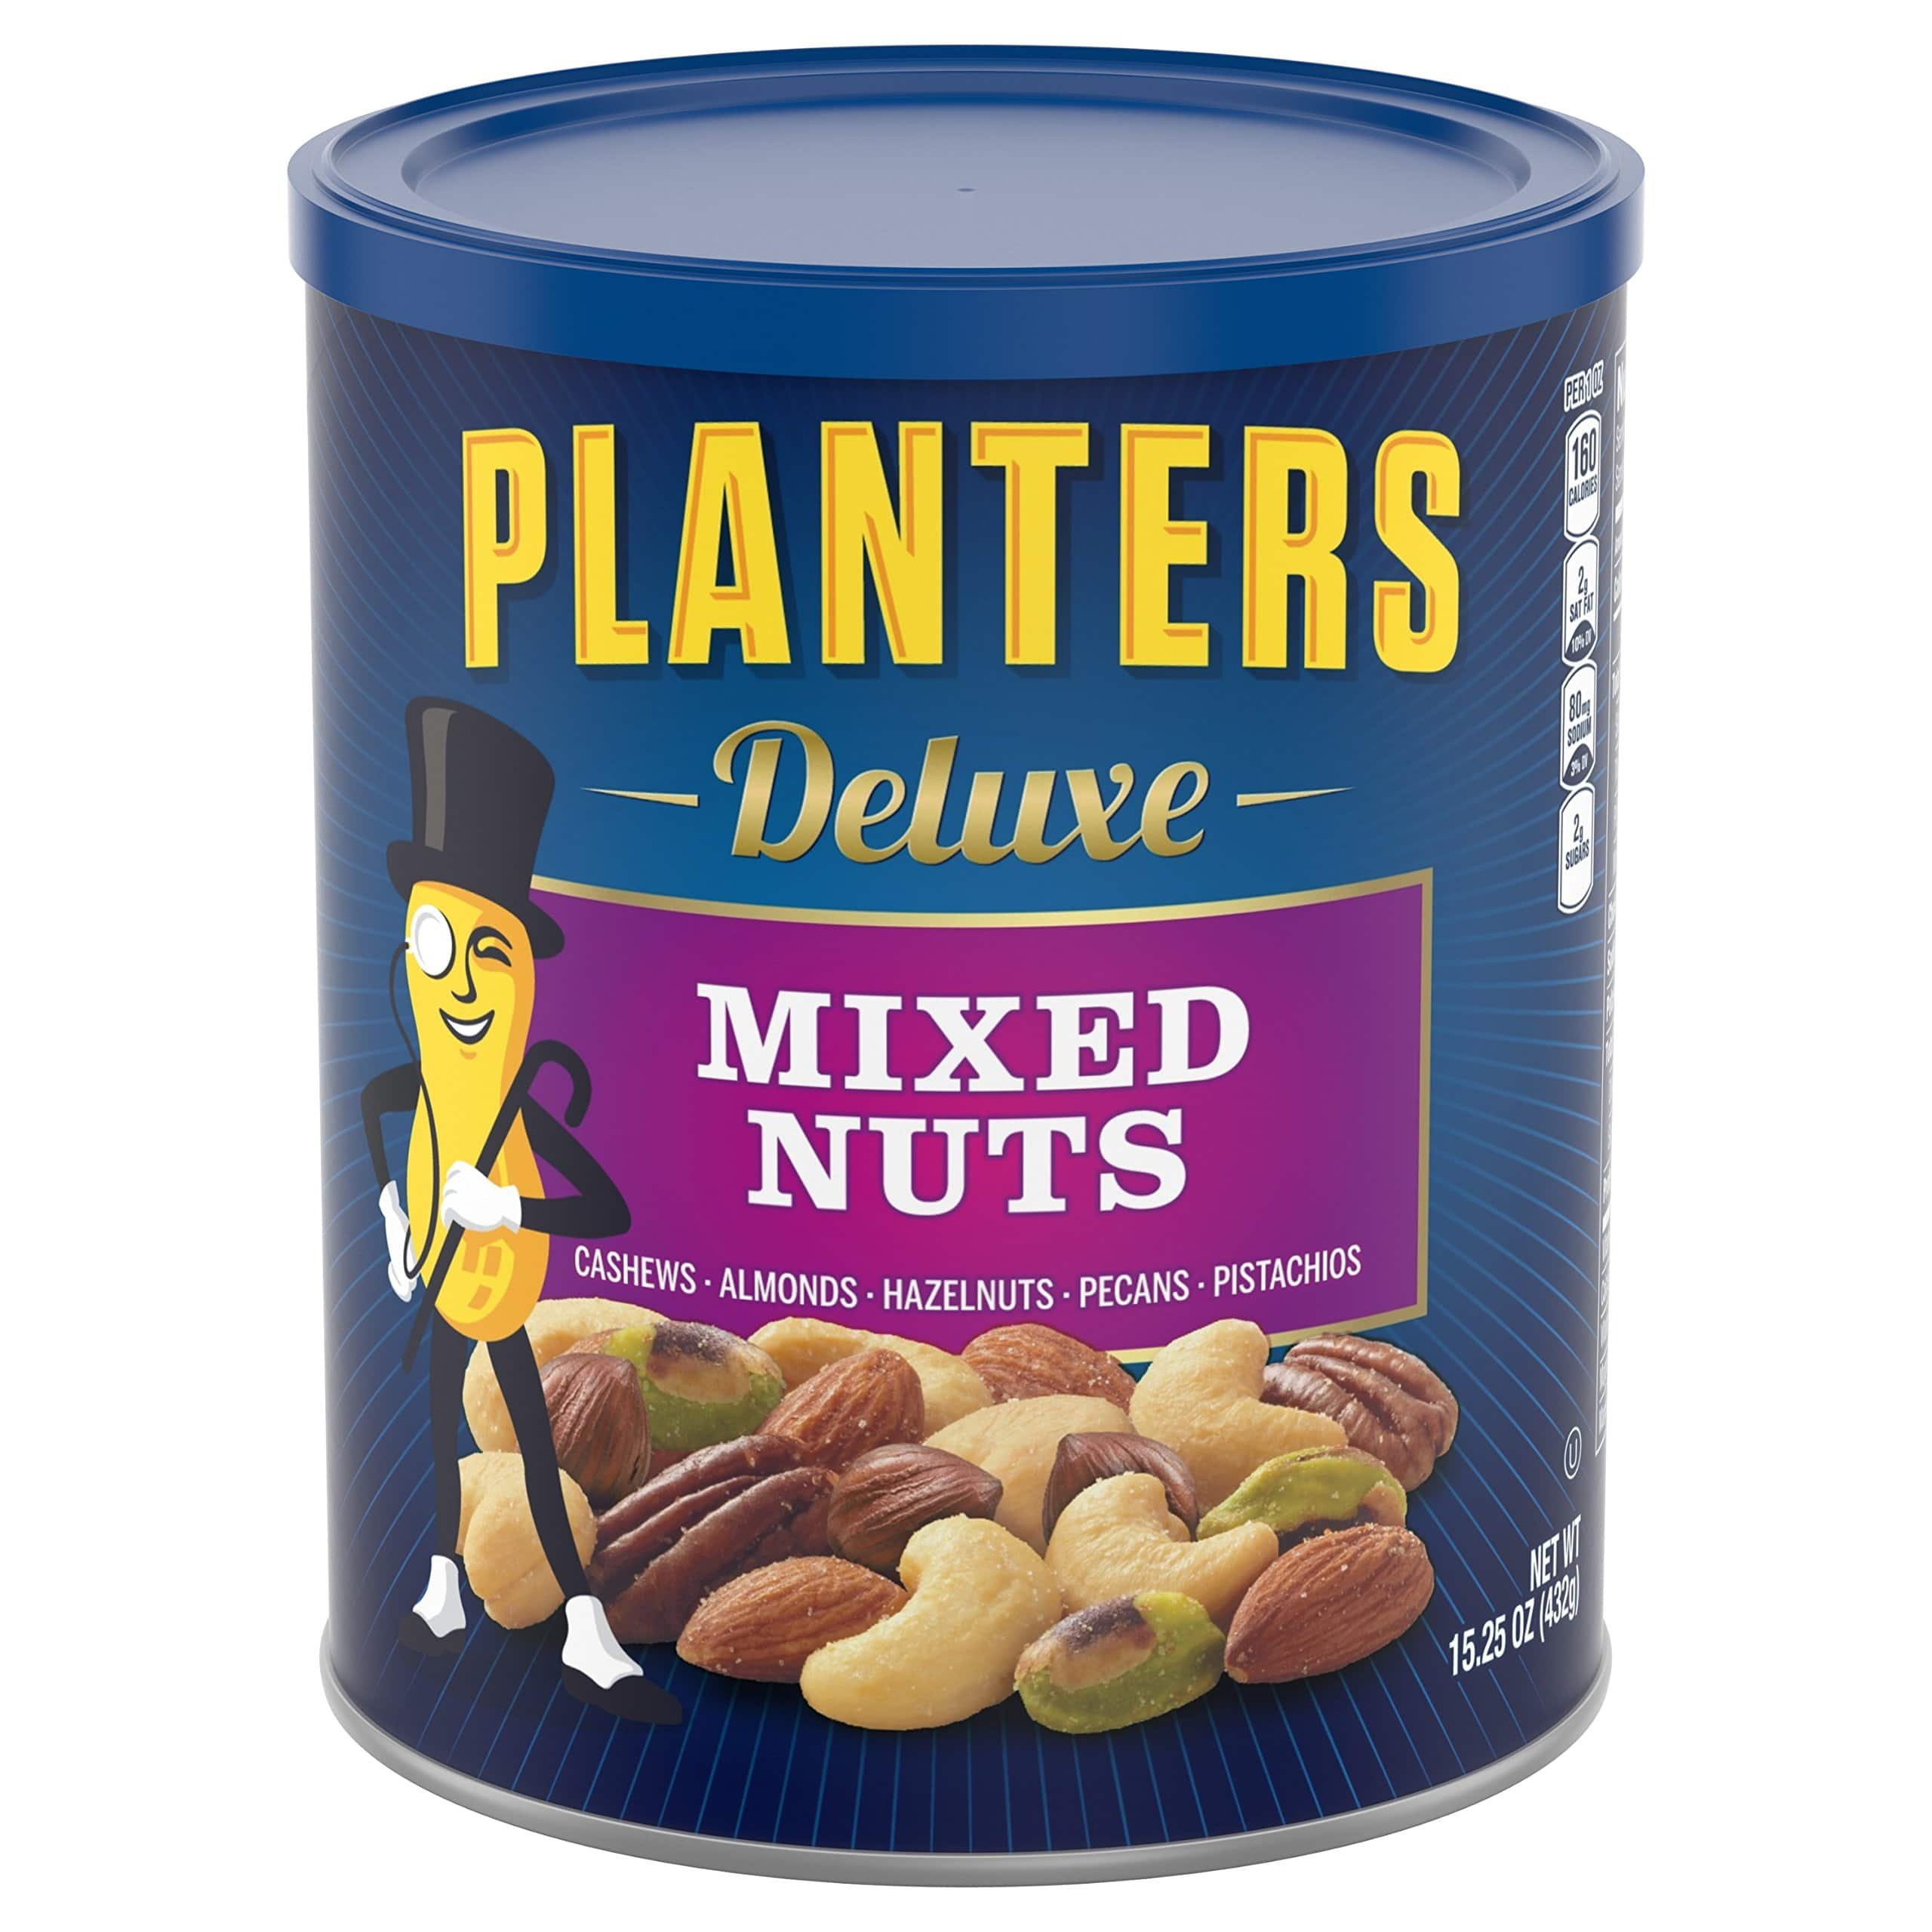 15.25oz Planters Deluxe Mixed Nuts $7.19 or less w/ S&S + Free S/H & More